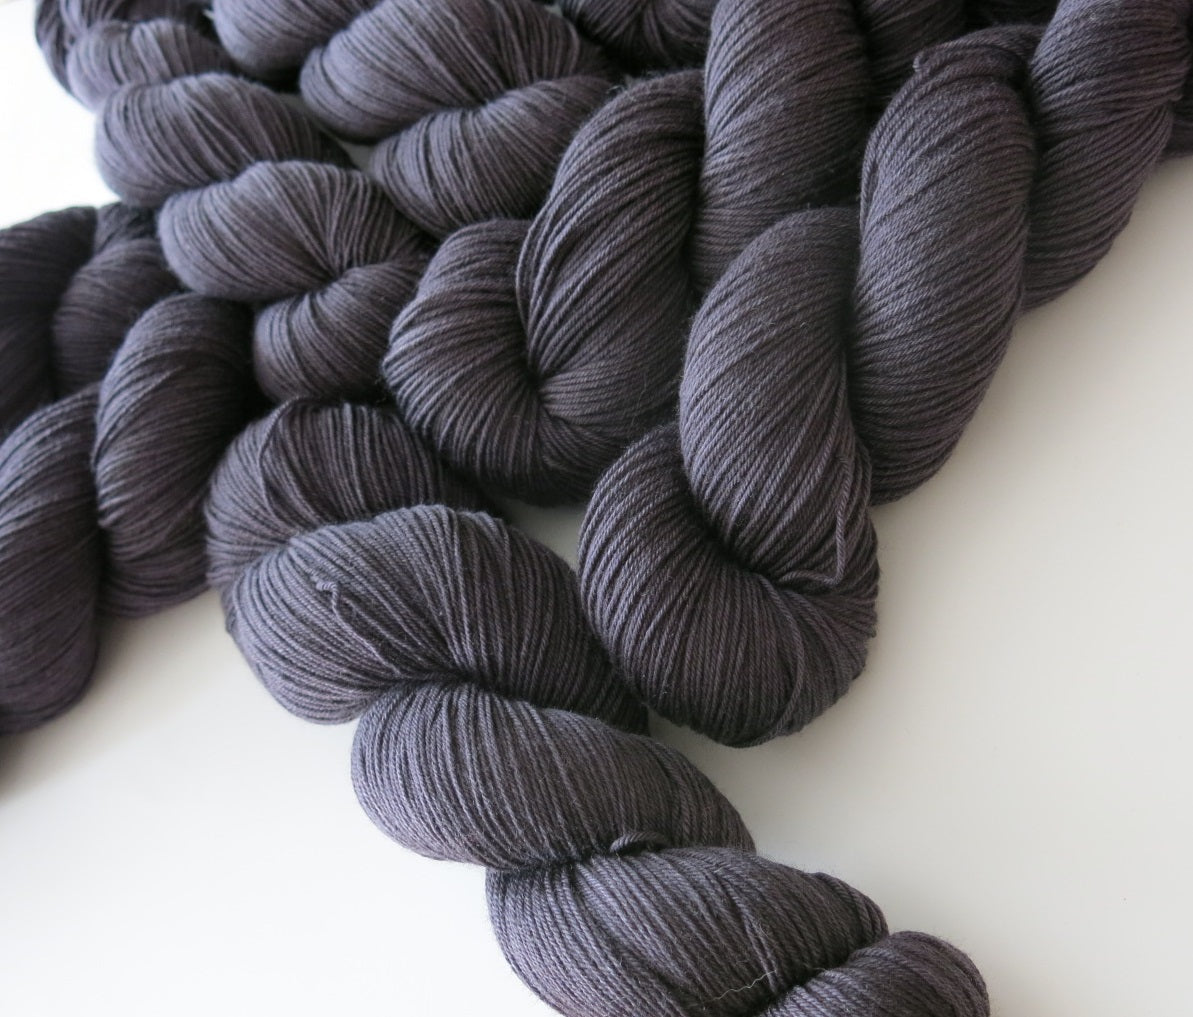 witches cape sock yarn by indie dyer my mama knits